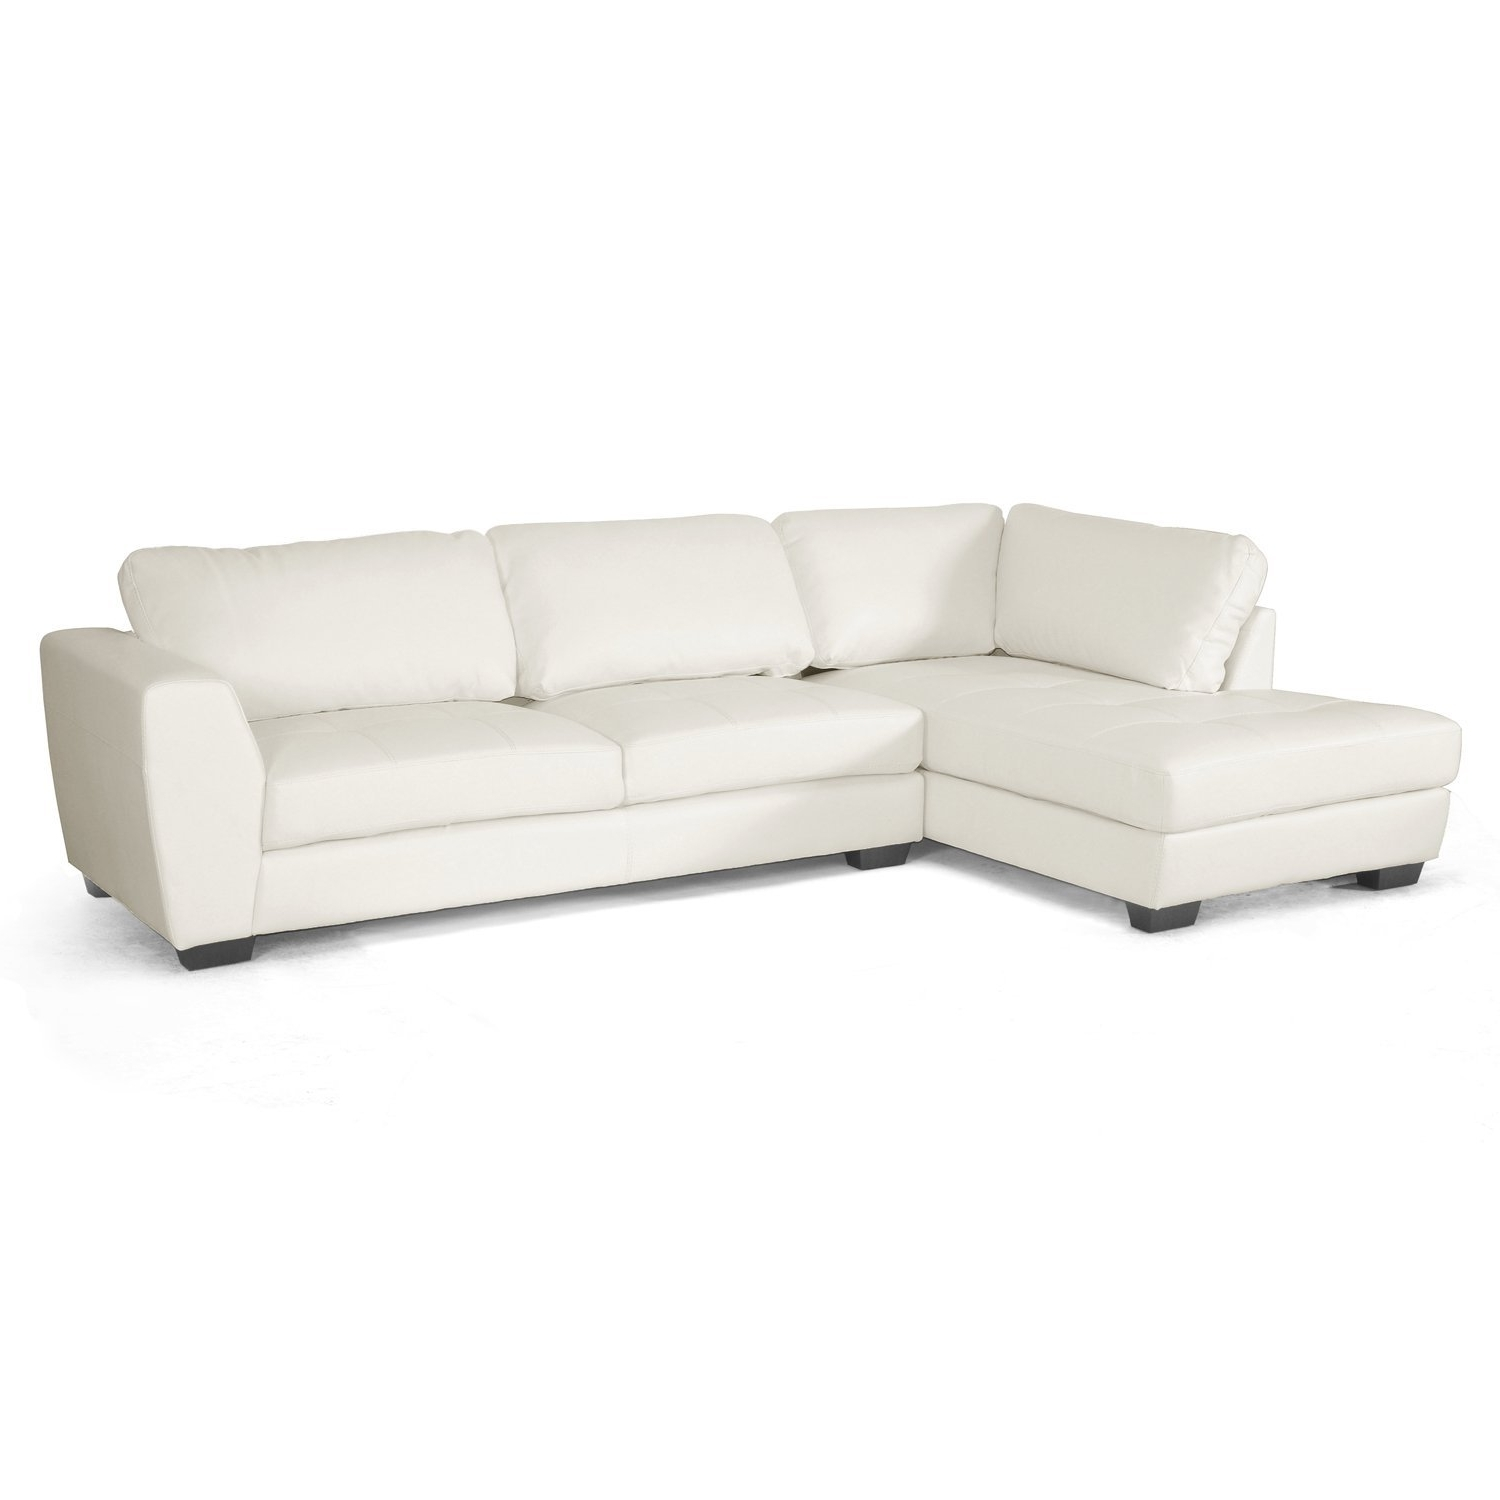 White Leather Sectionals With Chaise Intended For Most Recent Amazon: Baxton Studio Orland Leather Modern Sectional Sofa Set (View 14 of 15)